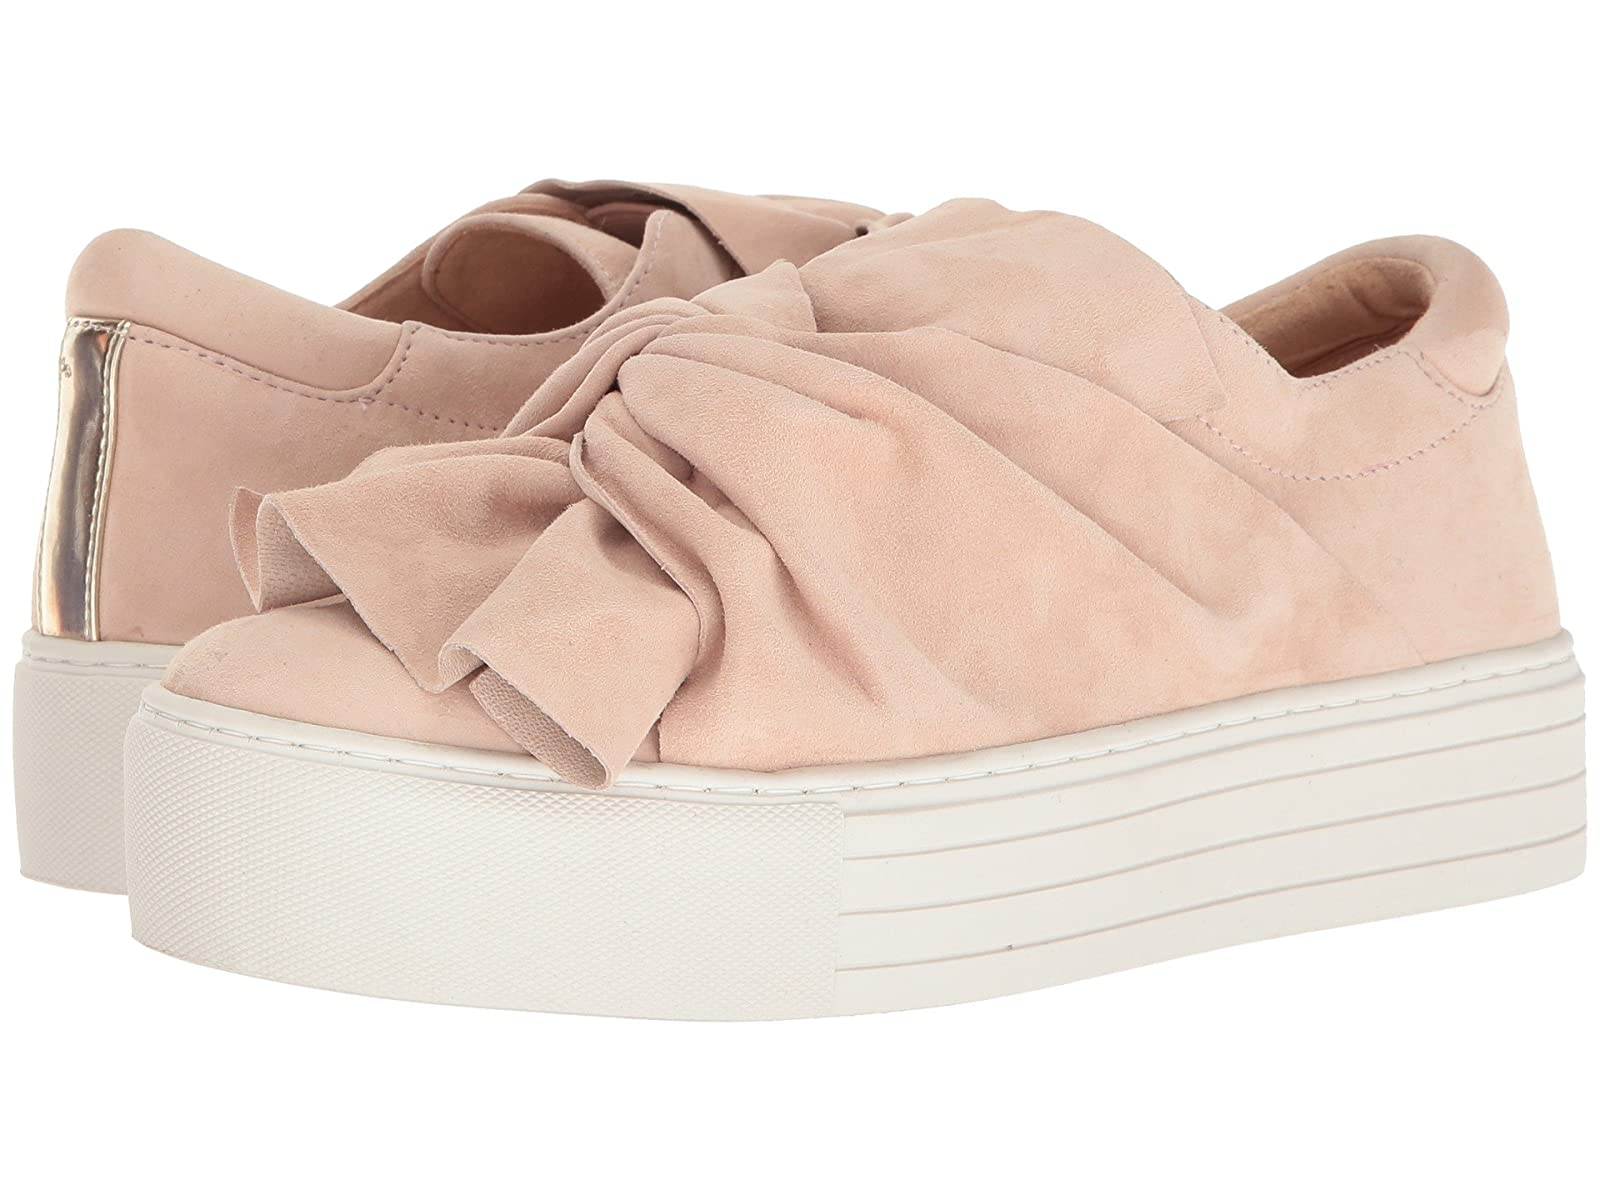 Kenneth Cole New York AaronCheap and distinctive eye-catching shoes